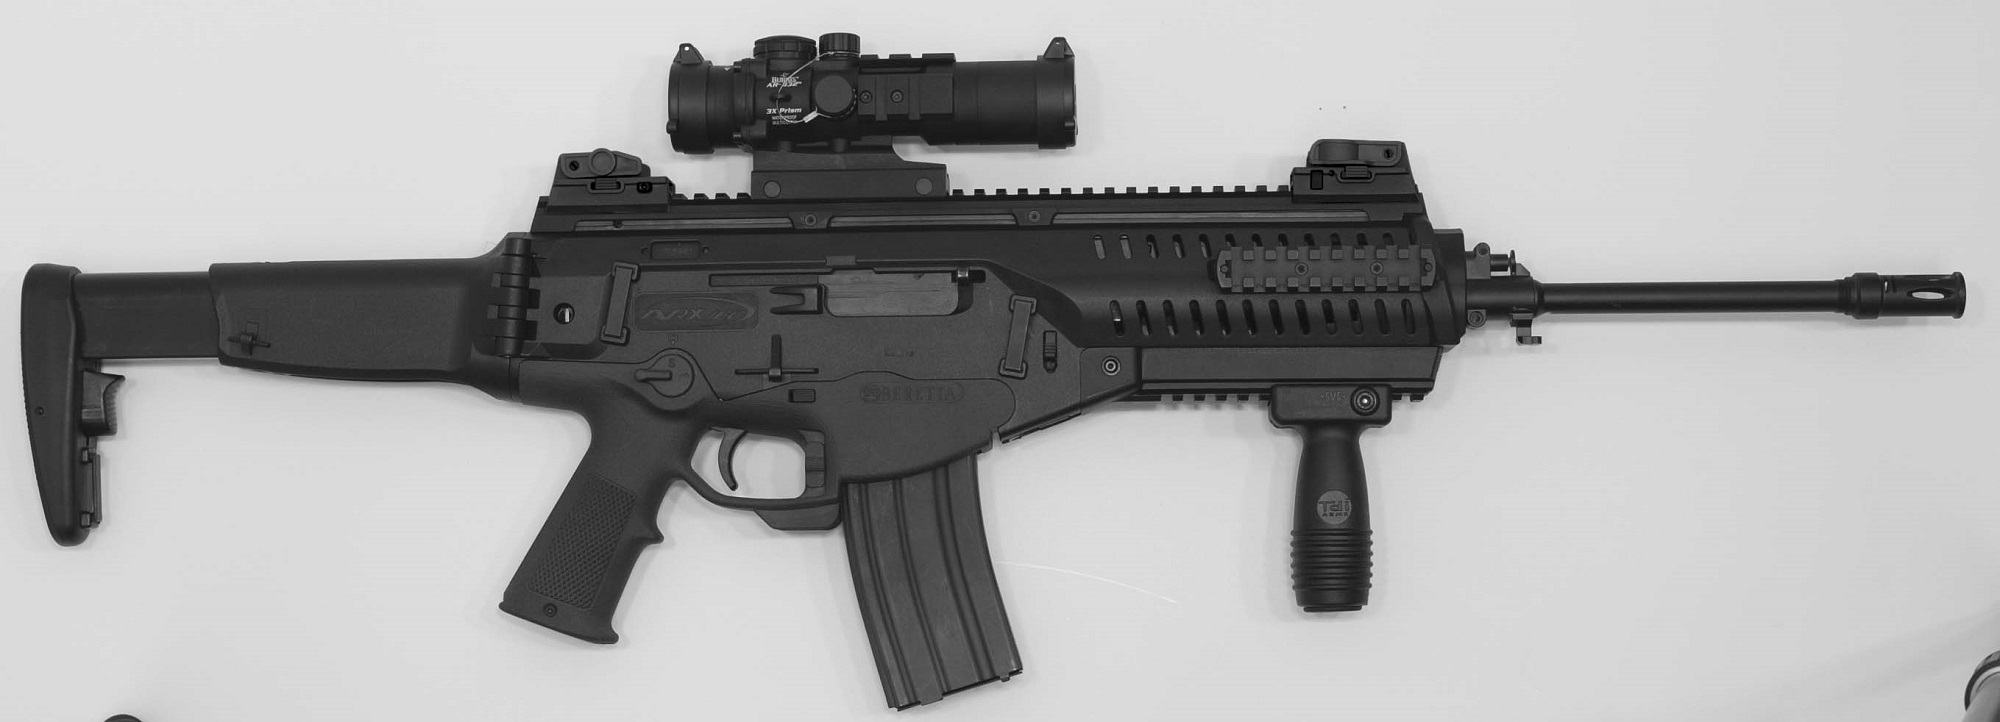 The ARX-100 was first showcased at the 142nd NRA Annual Meetings & Exhibits in Houston (TX)